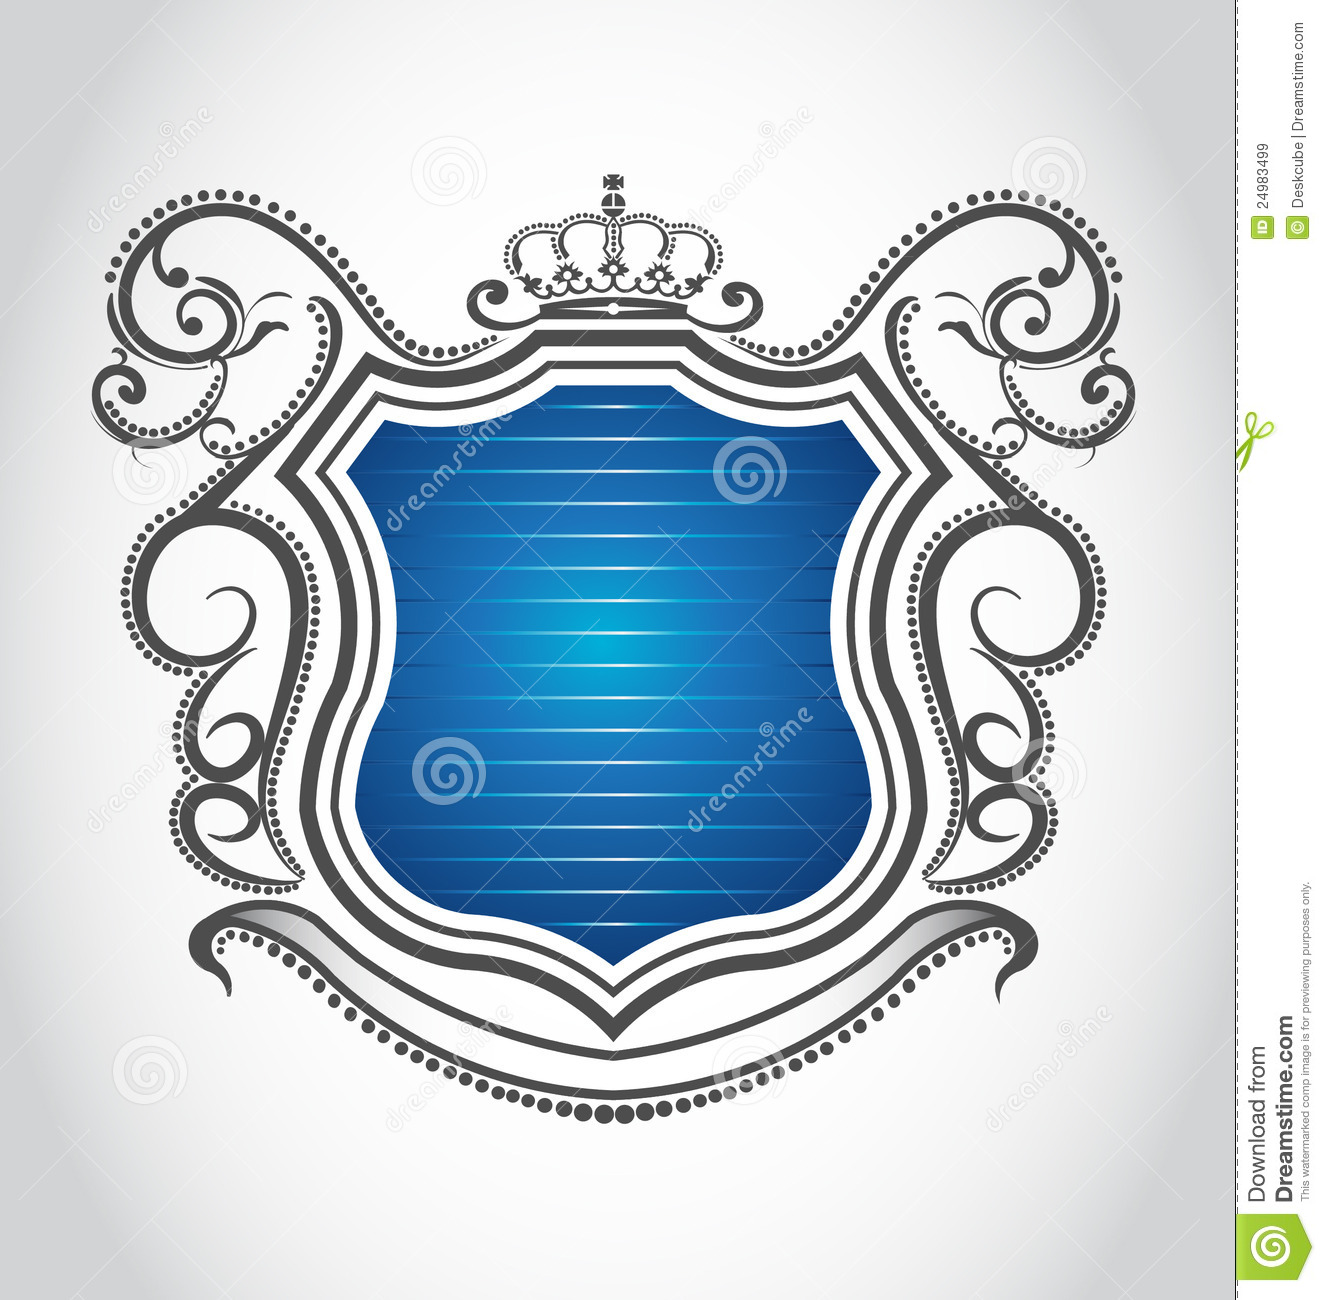 Vintage Emblem With Crown Royalty Free Stock Images - Image: 24983499